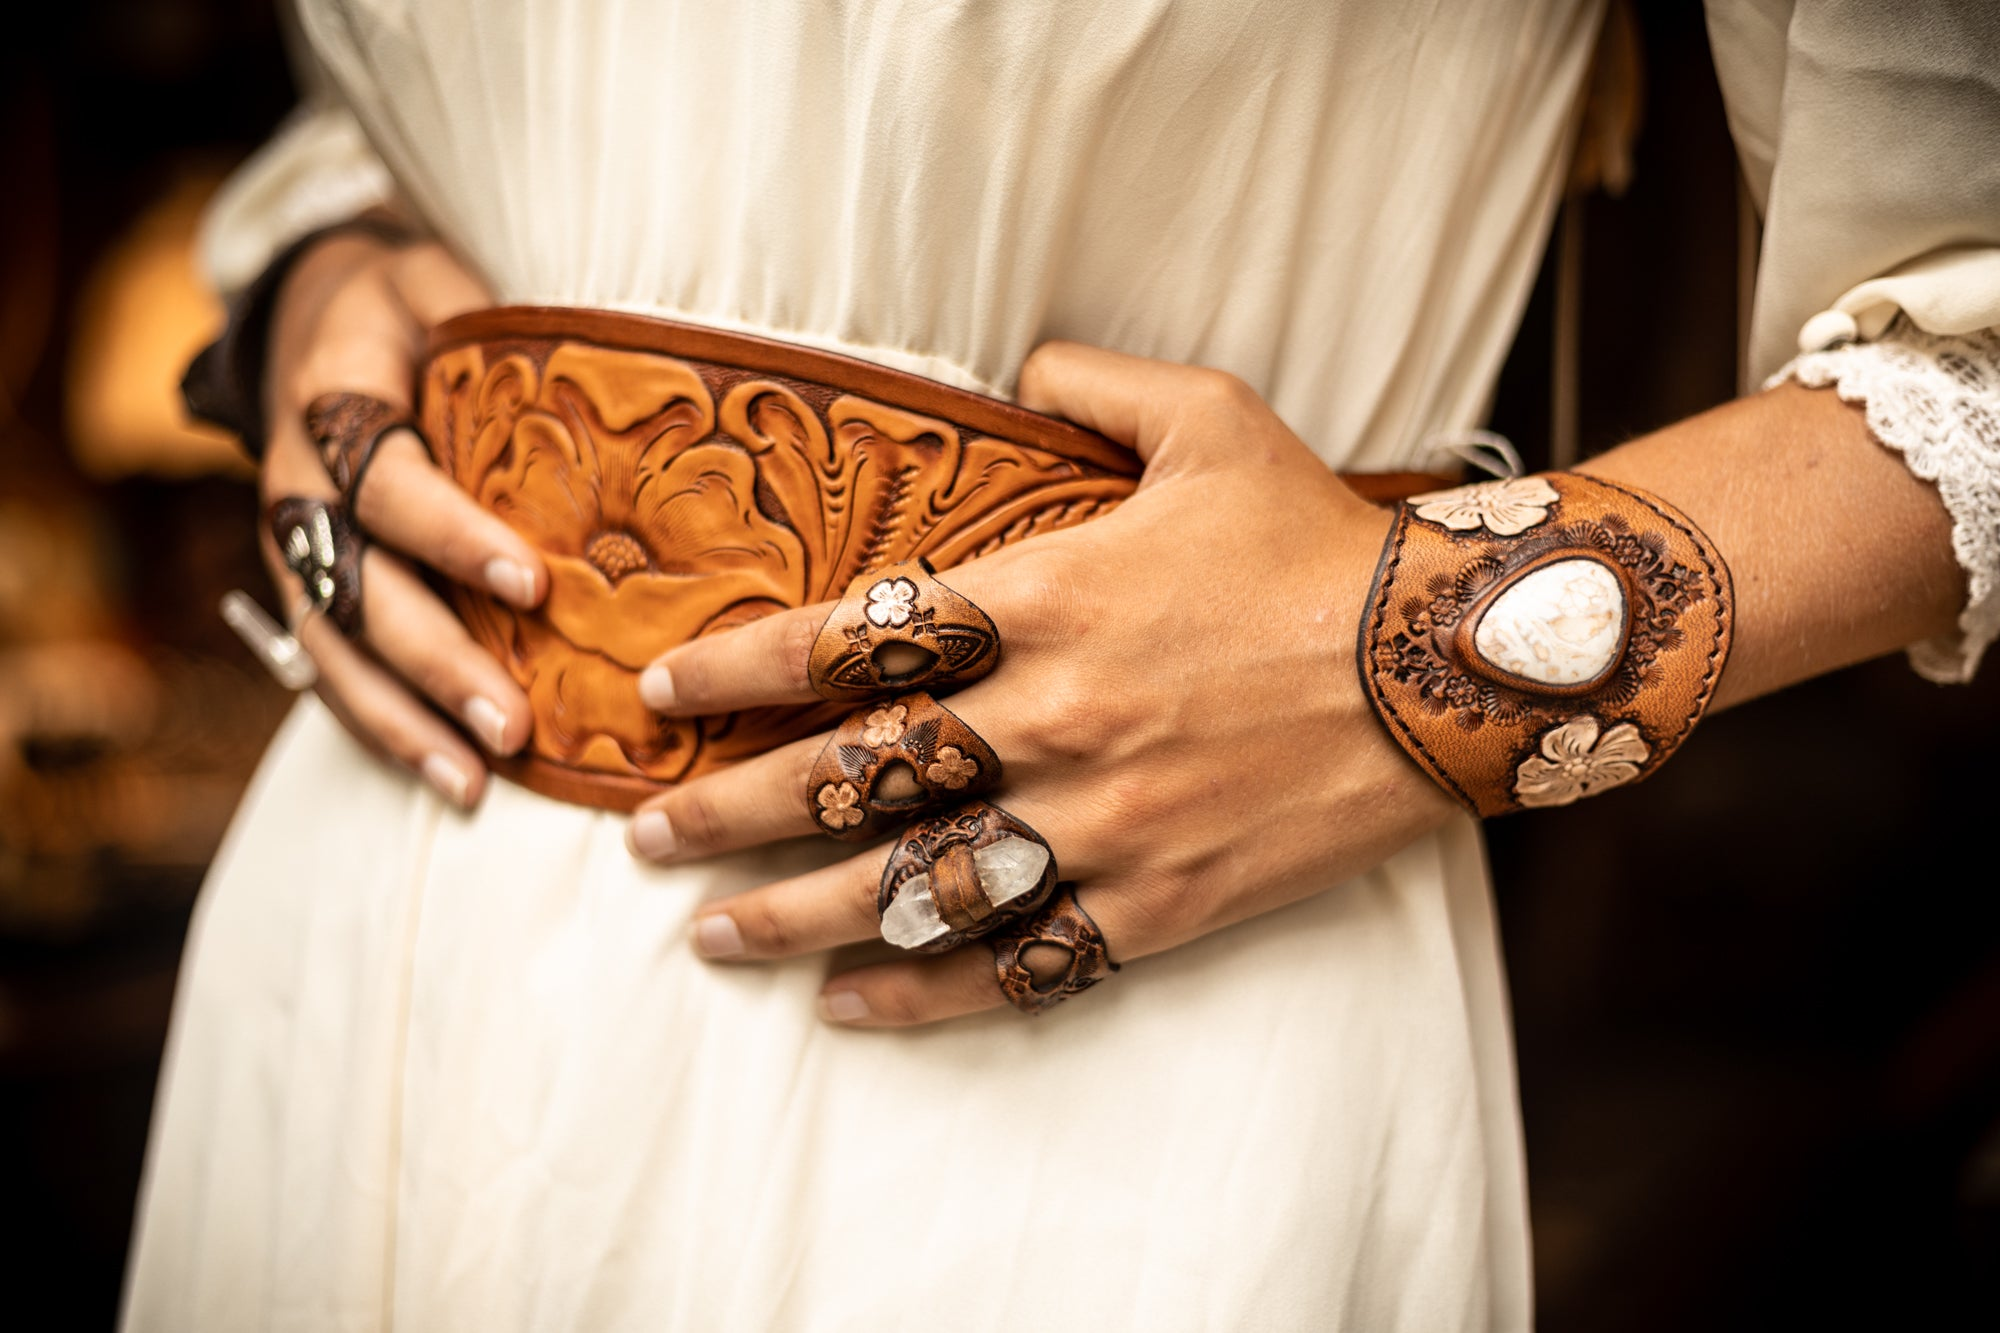 Buffalo Girl hand carved waist belt and tooled leather jewellery